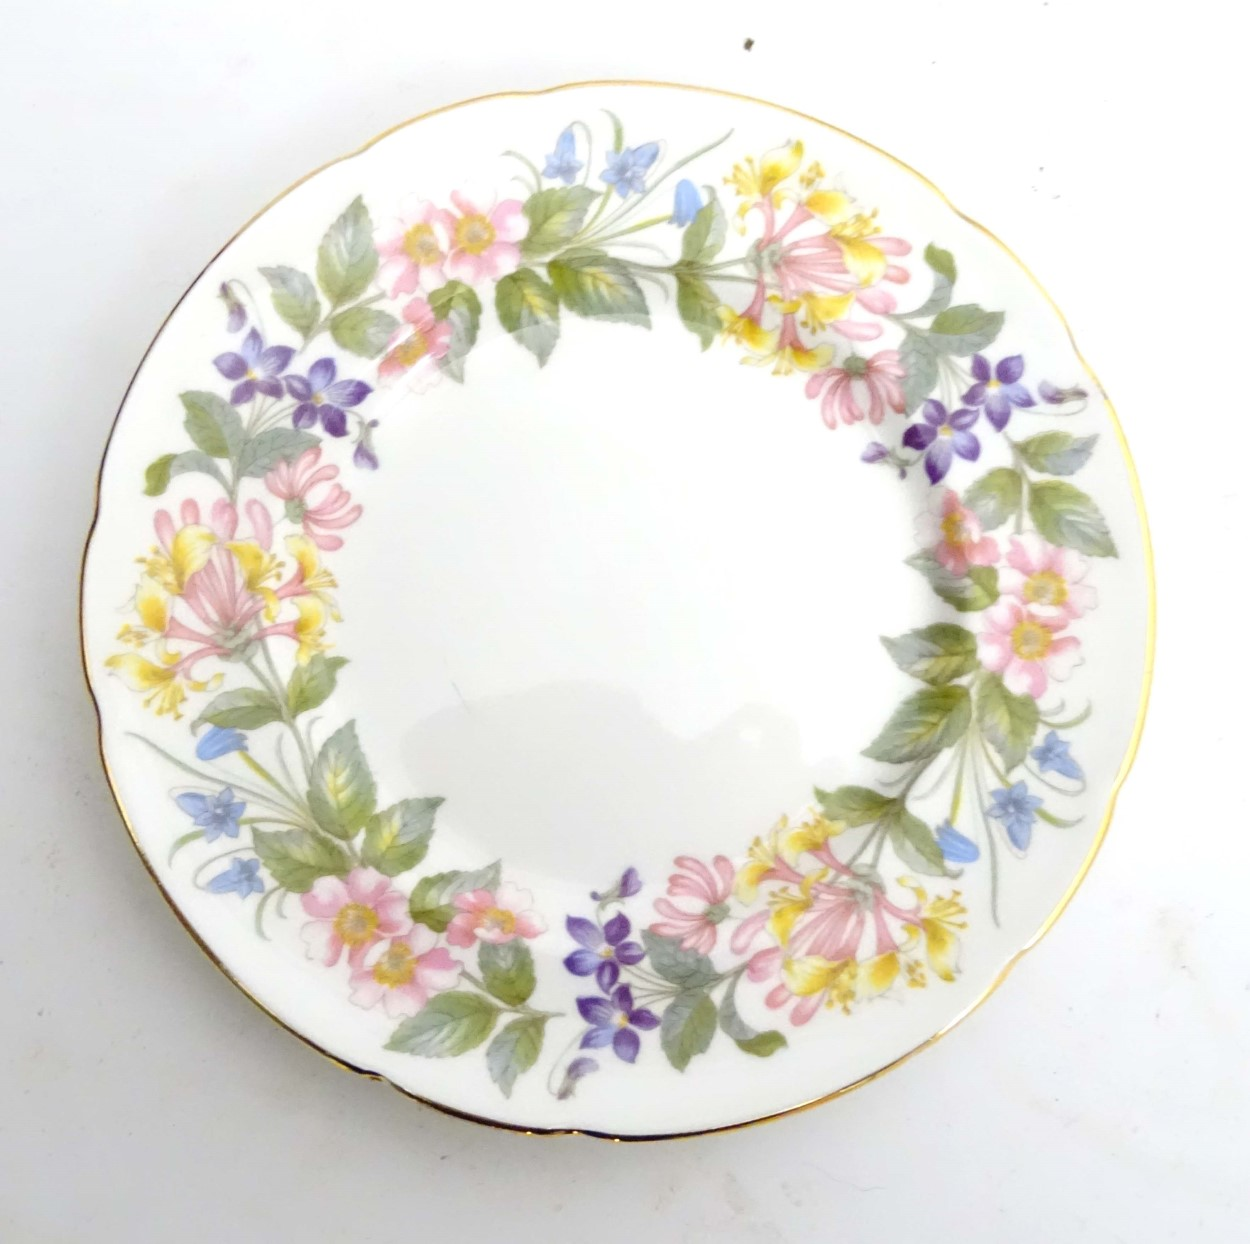 Lot 91 - A quantity of Paragon Country Lane tea wares decorated with a white ground and a colourful floral